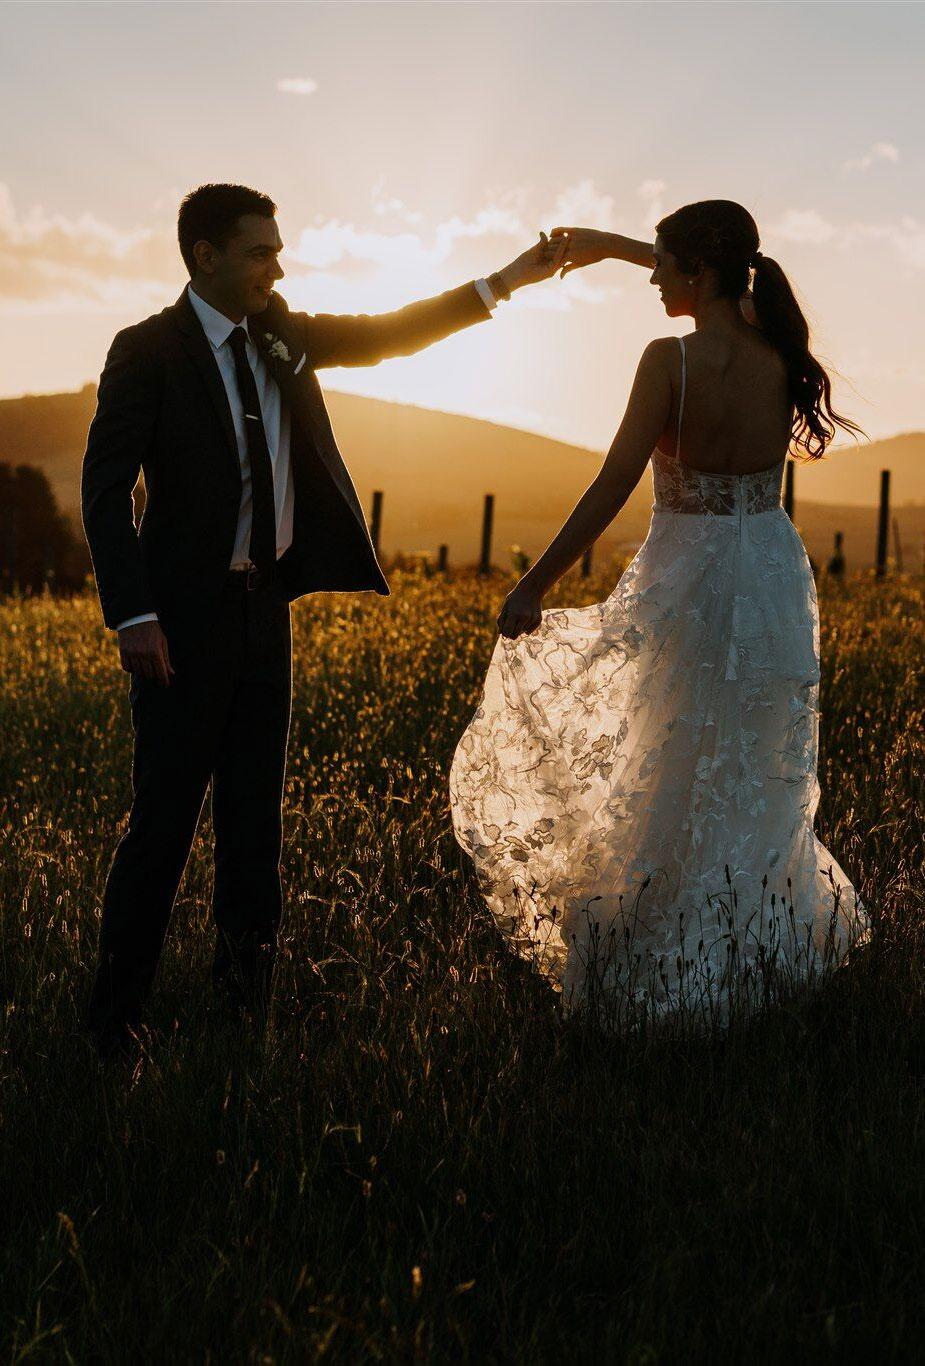 dance under sunset, romantic bride and groom portraits , romantic wedding portraits , sunset wedding photos, beautiful captured bride and groom sunset, sunset wedding photos, bride and groom wedding photos